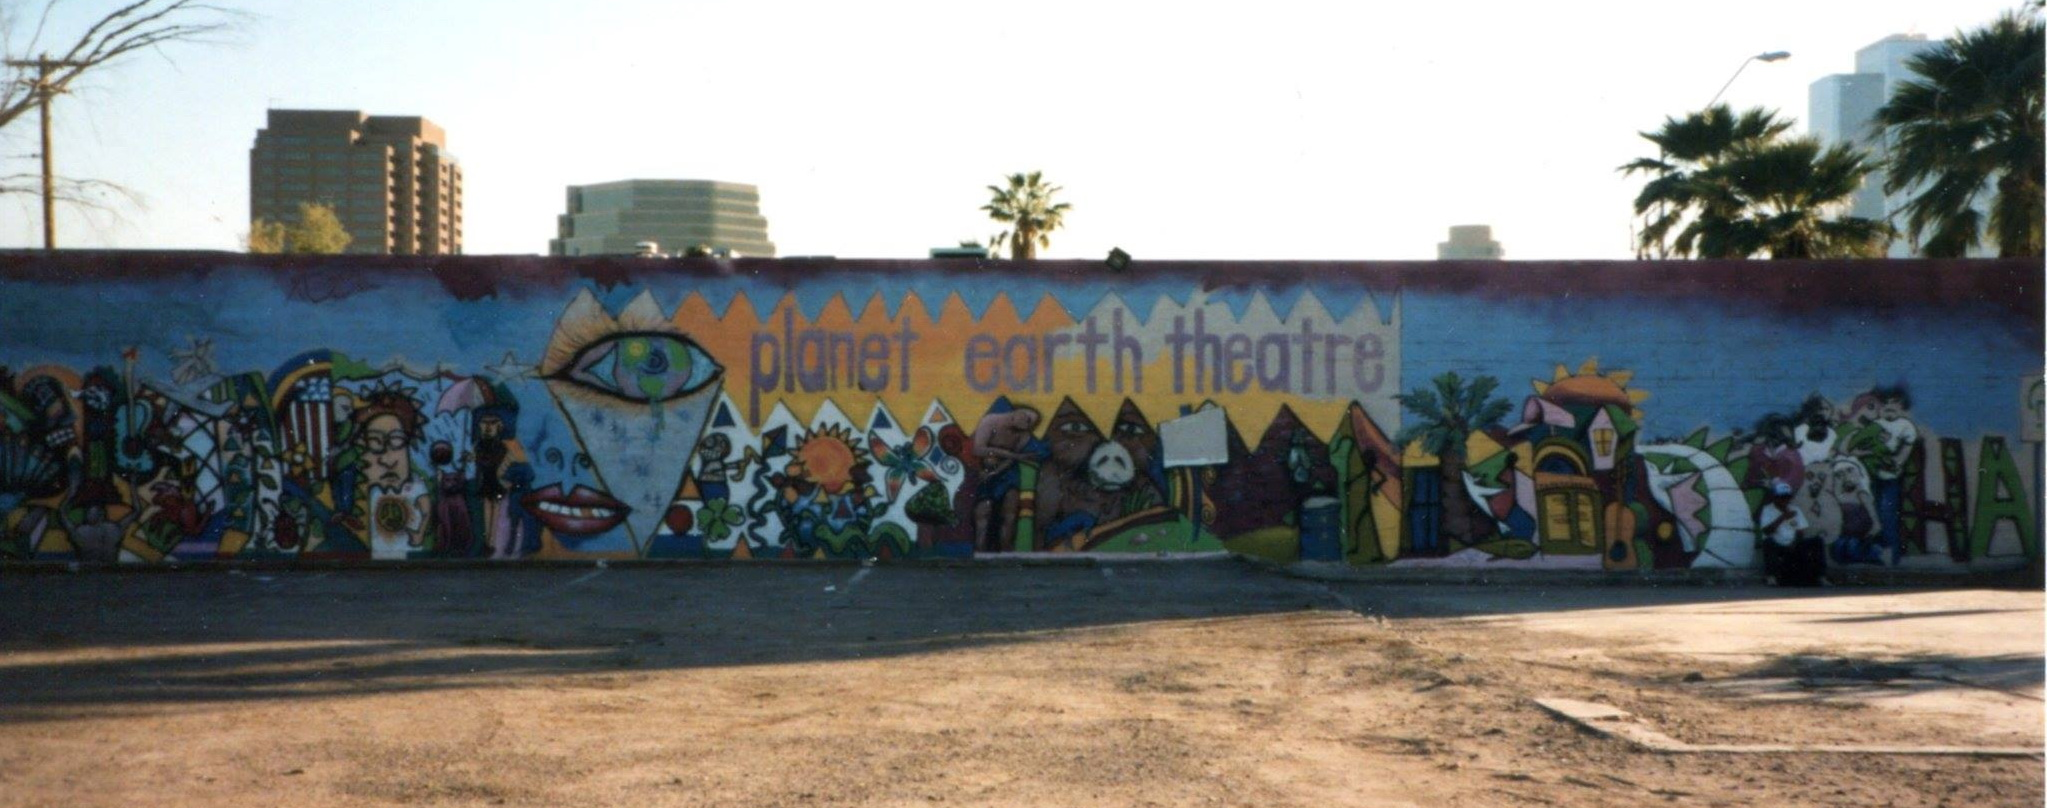 Planet Earth was as well-known for the mural that graced its exterior as it was for the plays it produced. Robert Anderson painted the artwork after being given an exhibition in the theater's art gallery. (Photo from the collection of Mollie Kellogg)